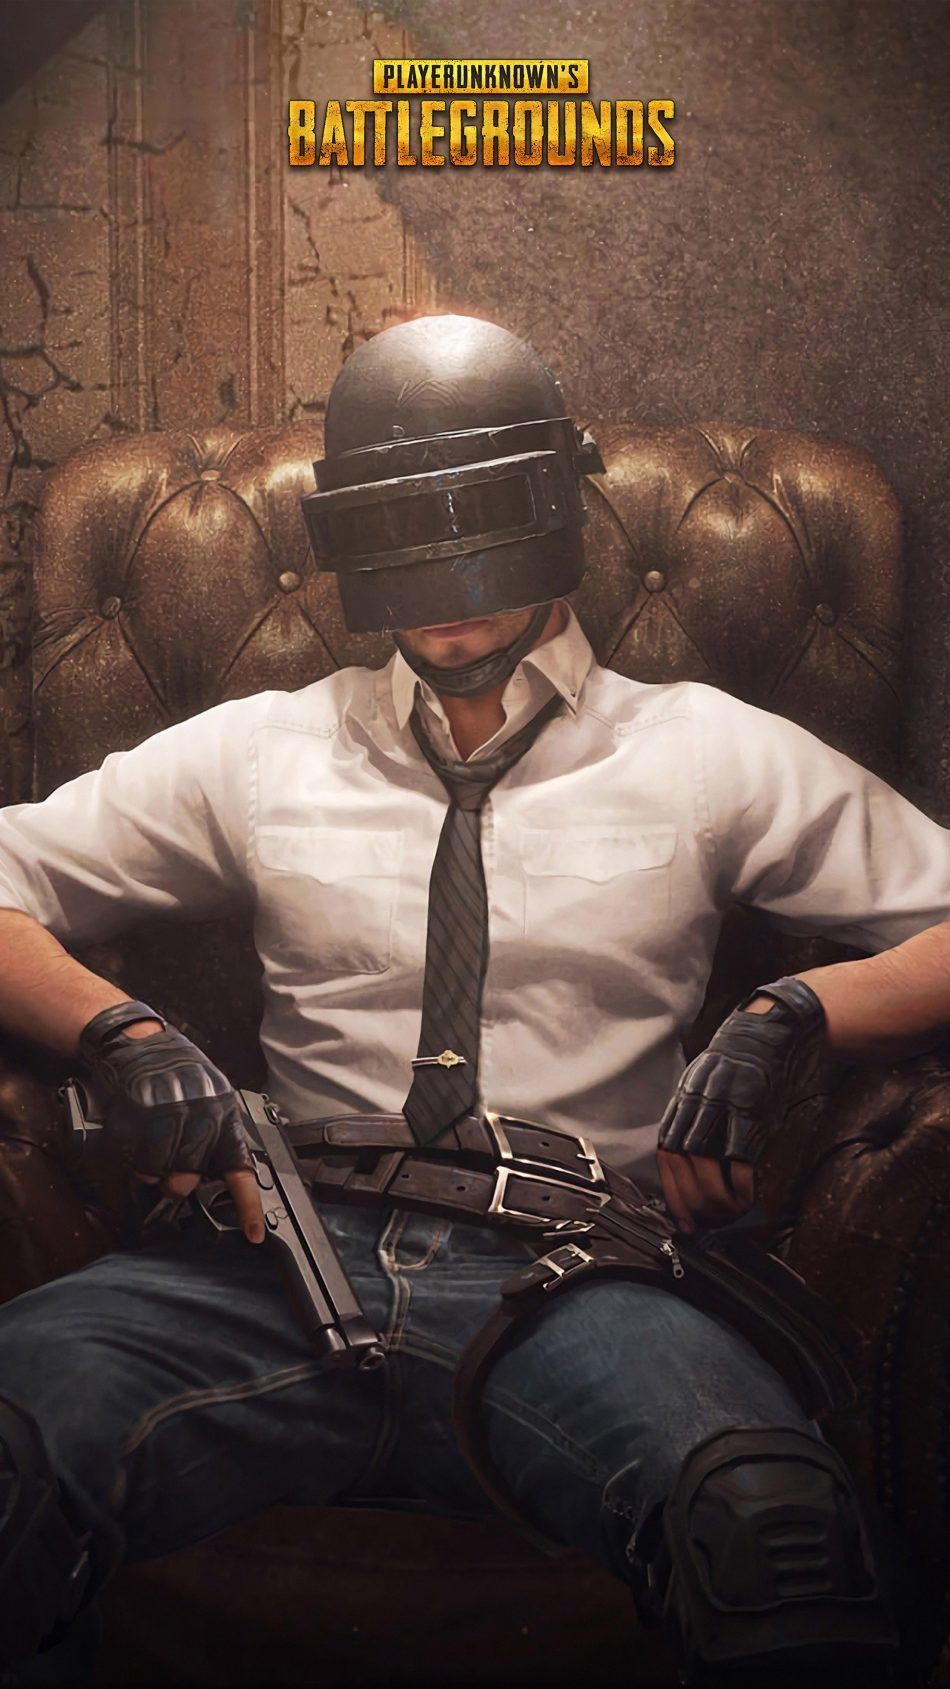 Best PUBG HD Wallpaper Download For Mobile PC 2019 Everyonics 950x1689